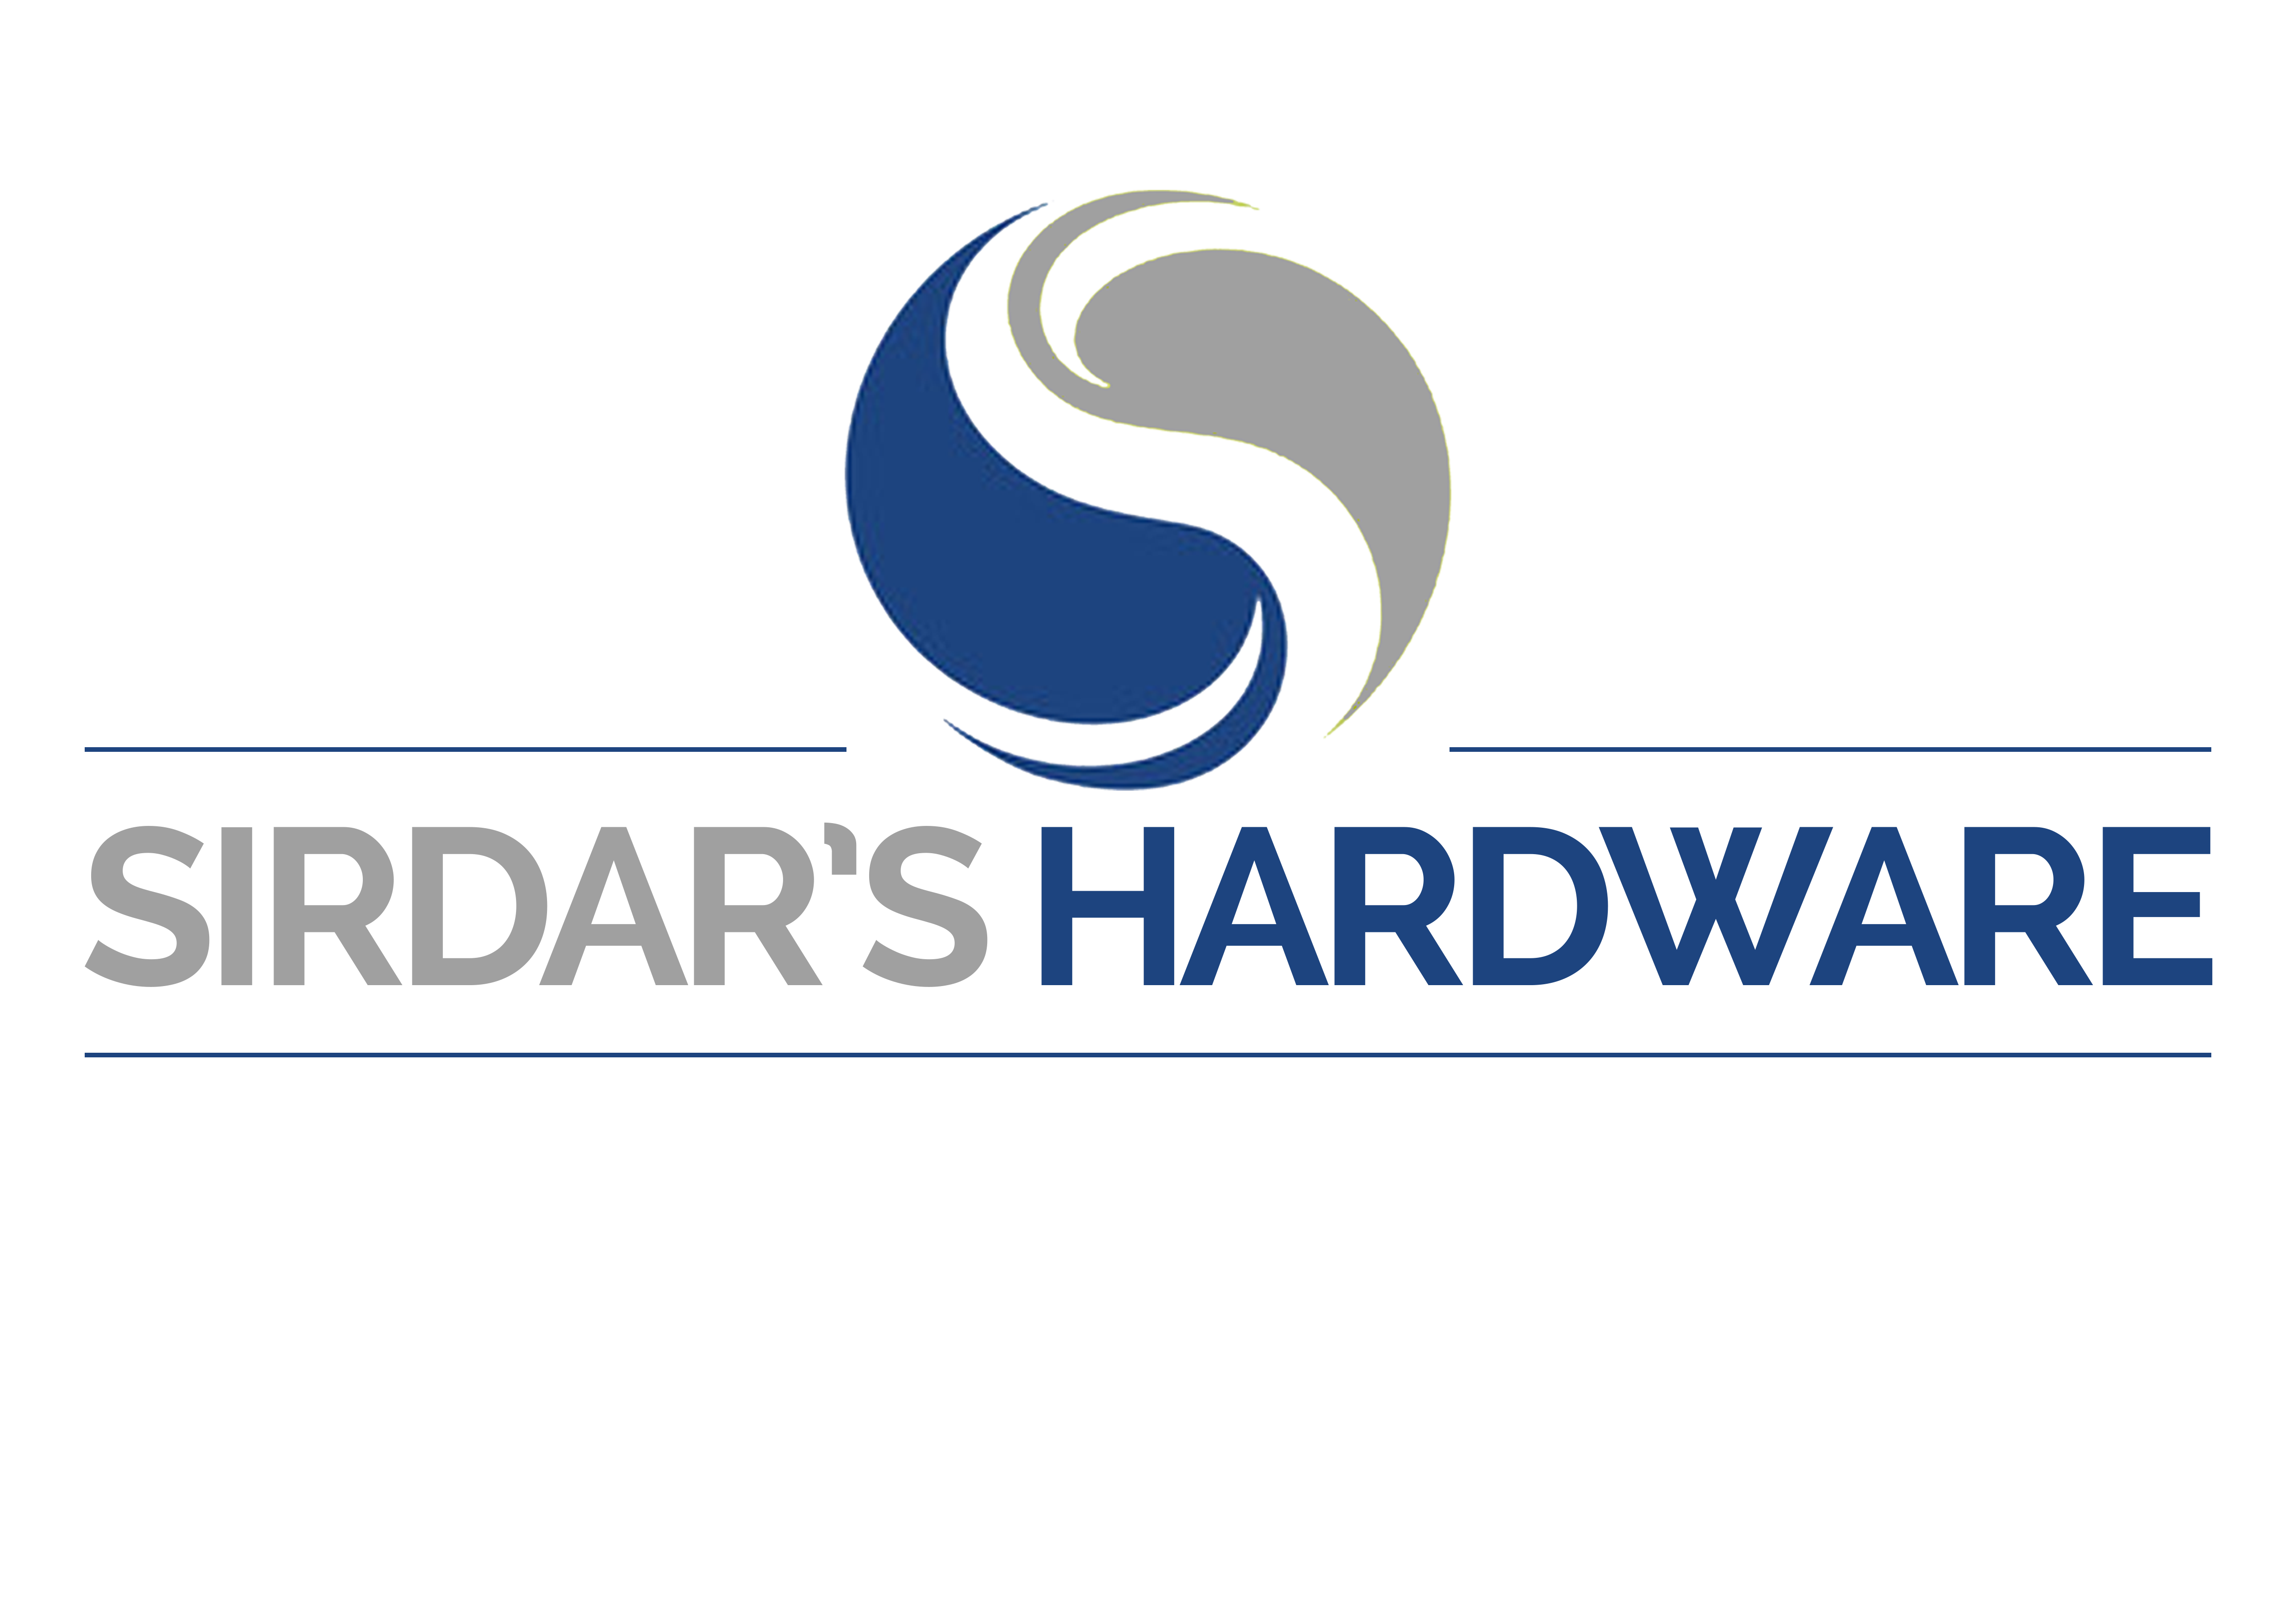 SirdarsHardware